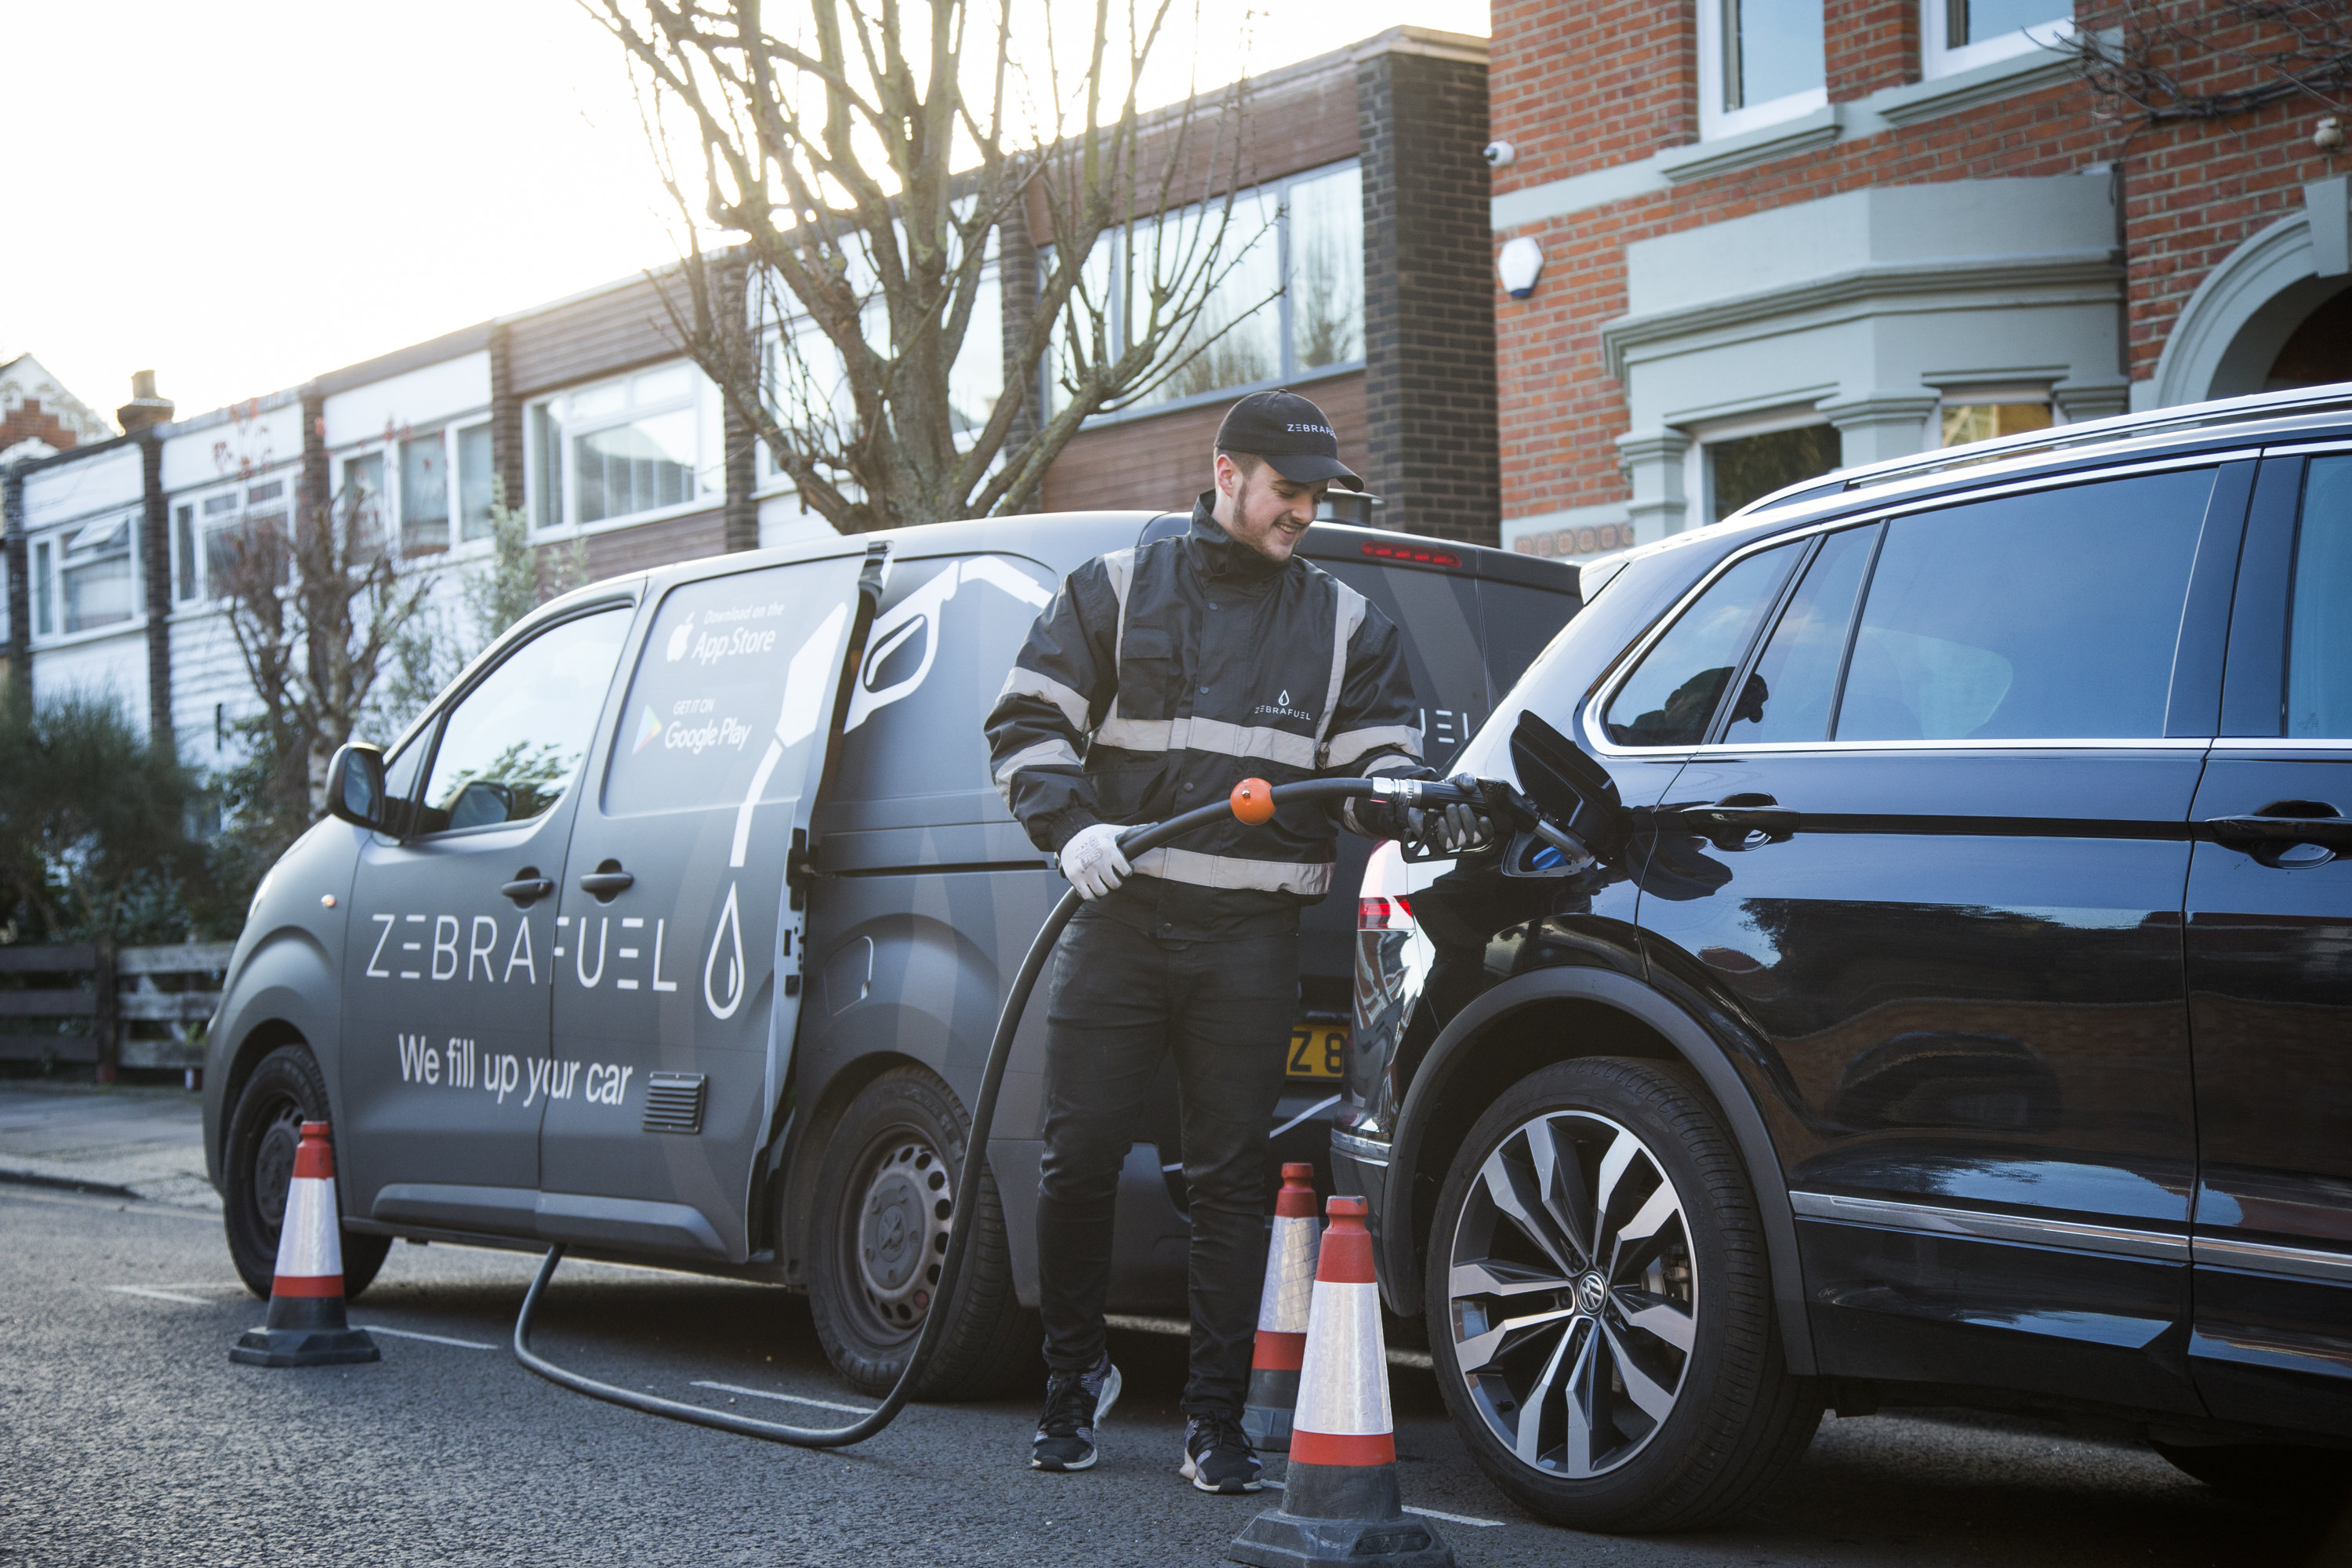 Company Launch Britain's First Petrol Delivery Service - SWNS